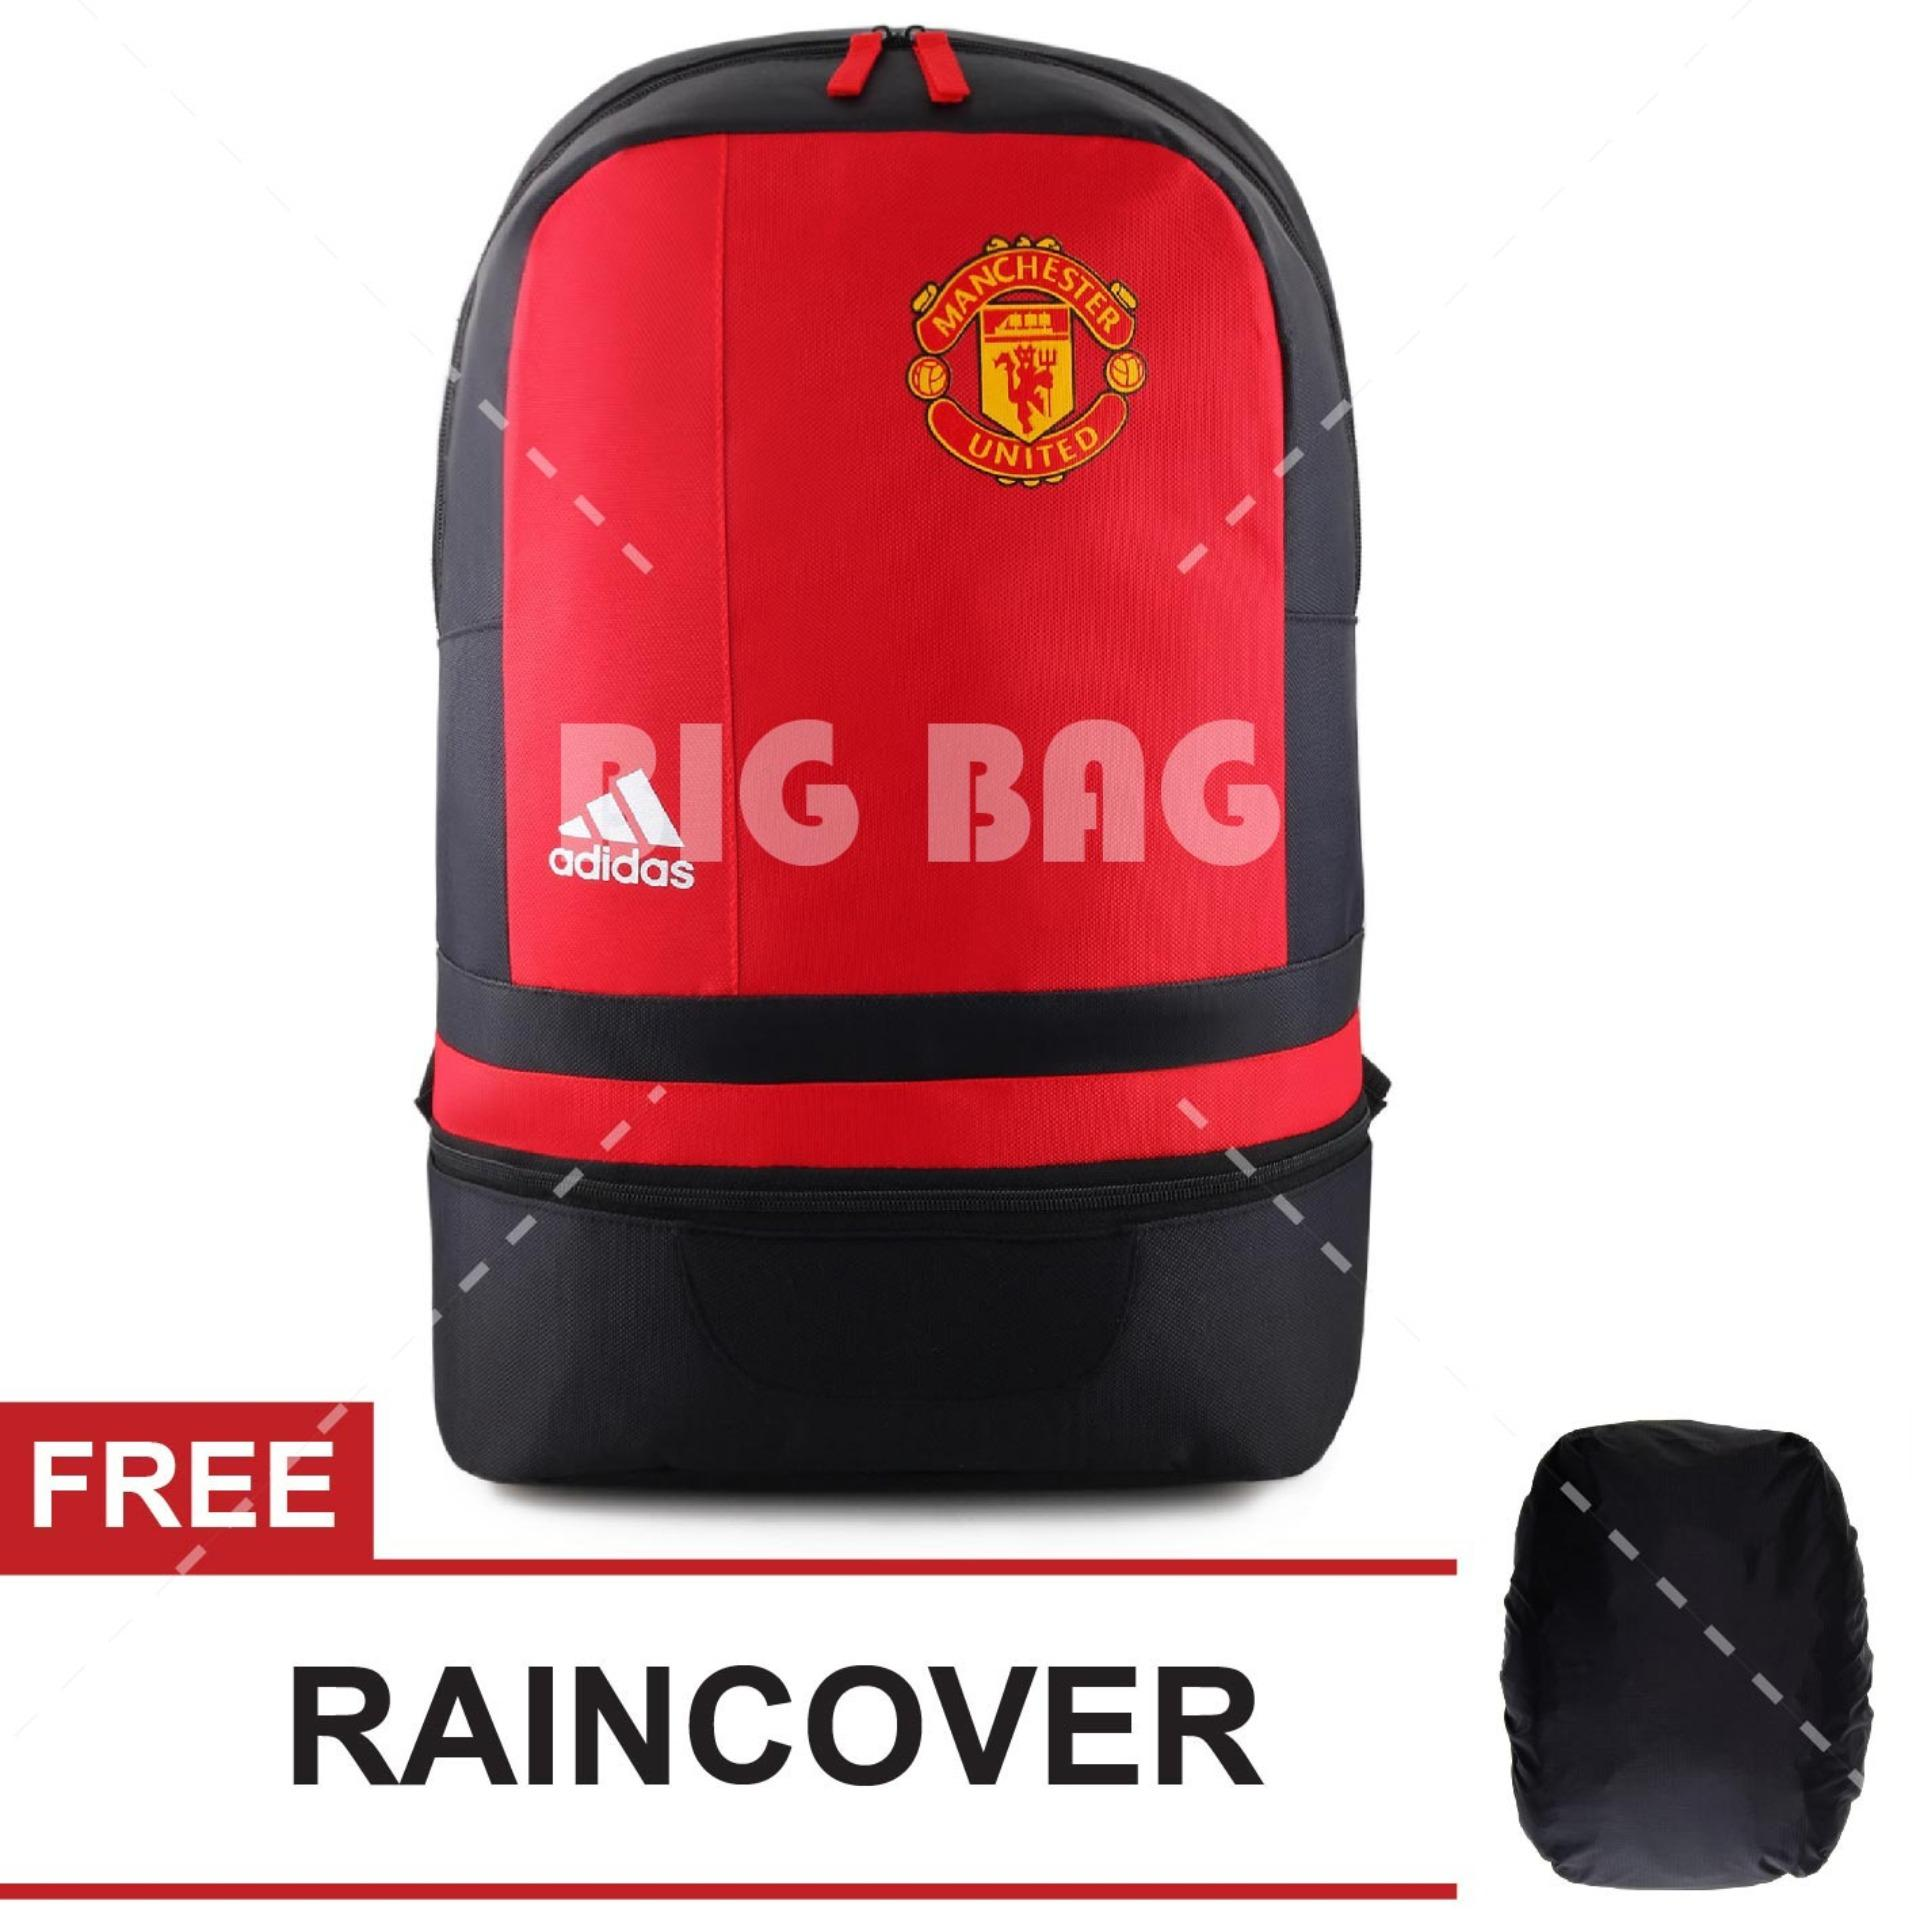 Tas Ransel Adidas Bola Pria M.U - Old Traffold Laptop Backpack Men Soccer Editions - Red + FREE Raincover